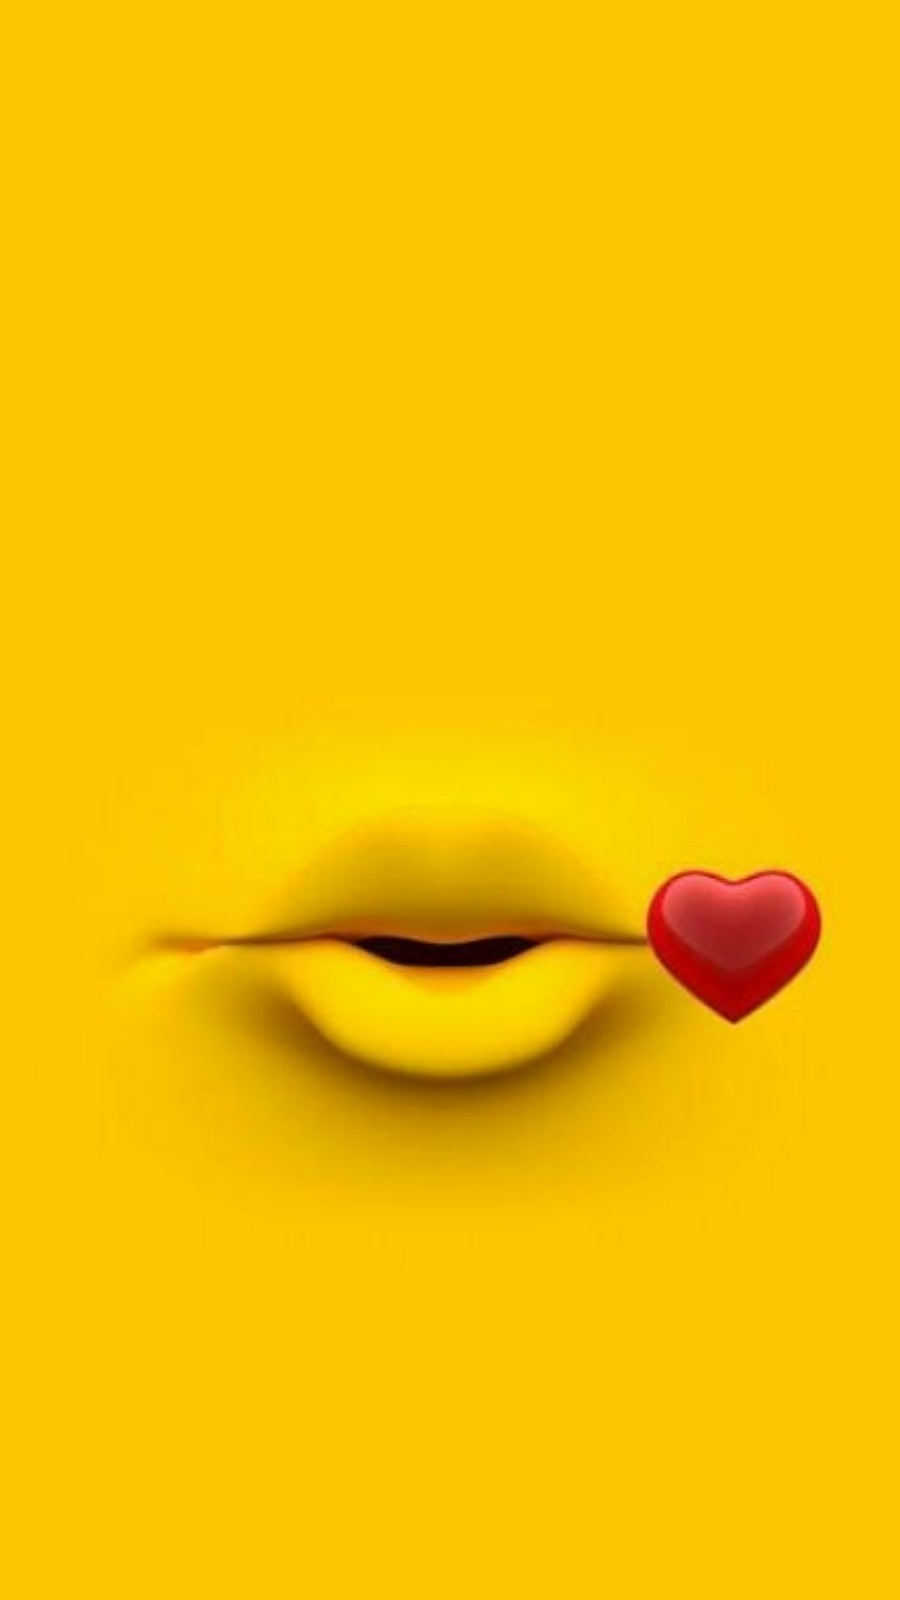 Kiss HD Wallpapers for Phone Free Download – Best Wallapers